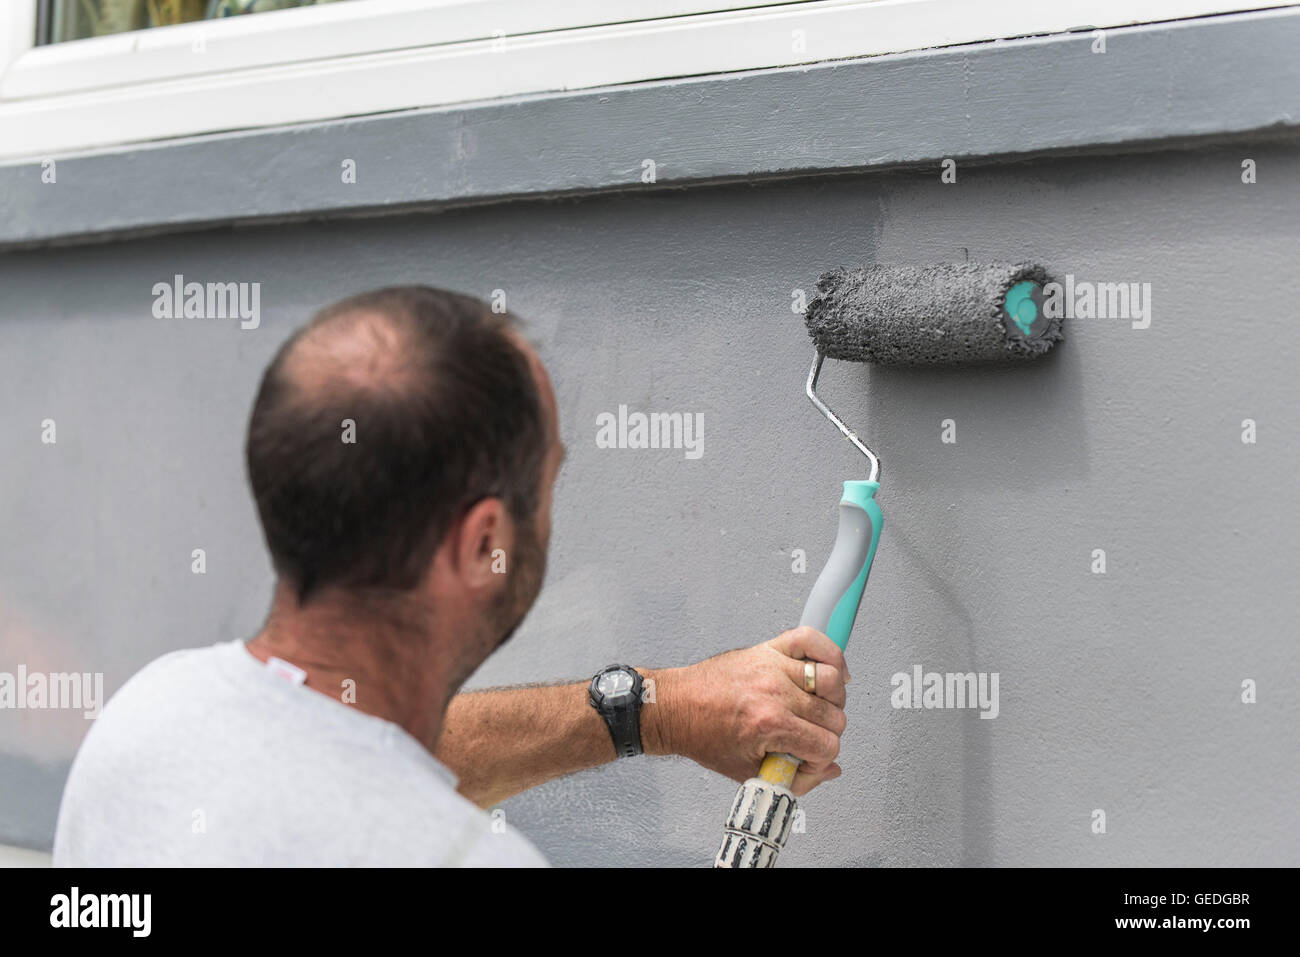 A painter and decorator painting the exterior wall of a house with a roller. - Stock Image